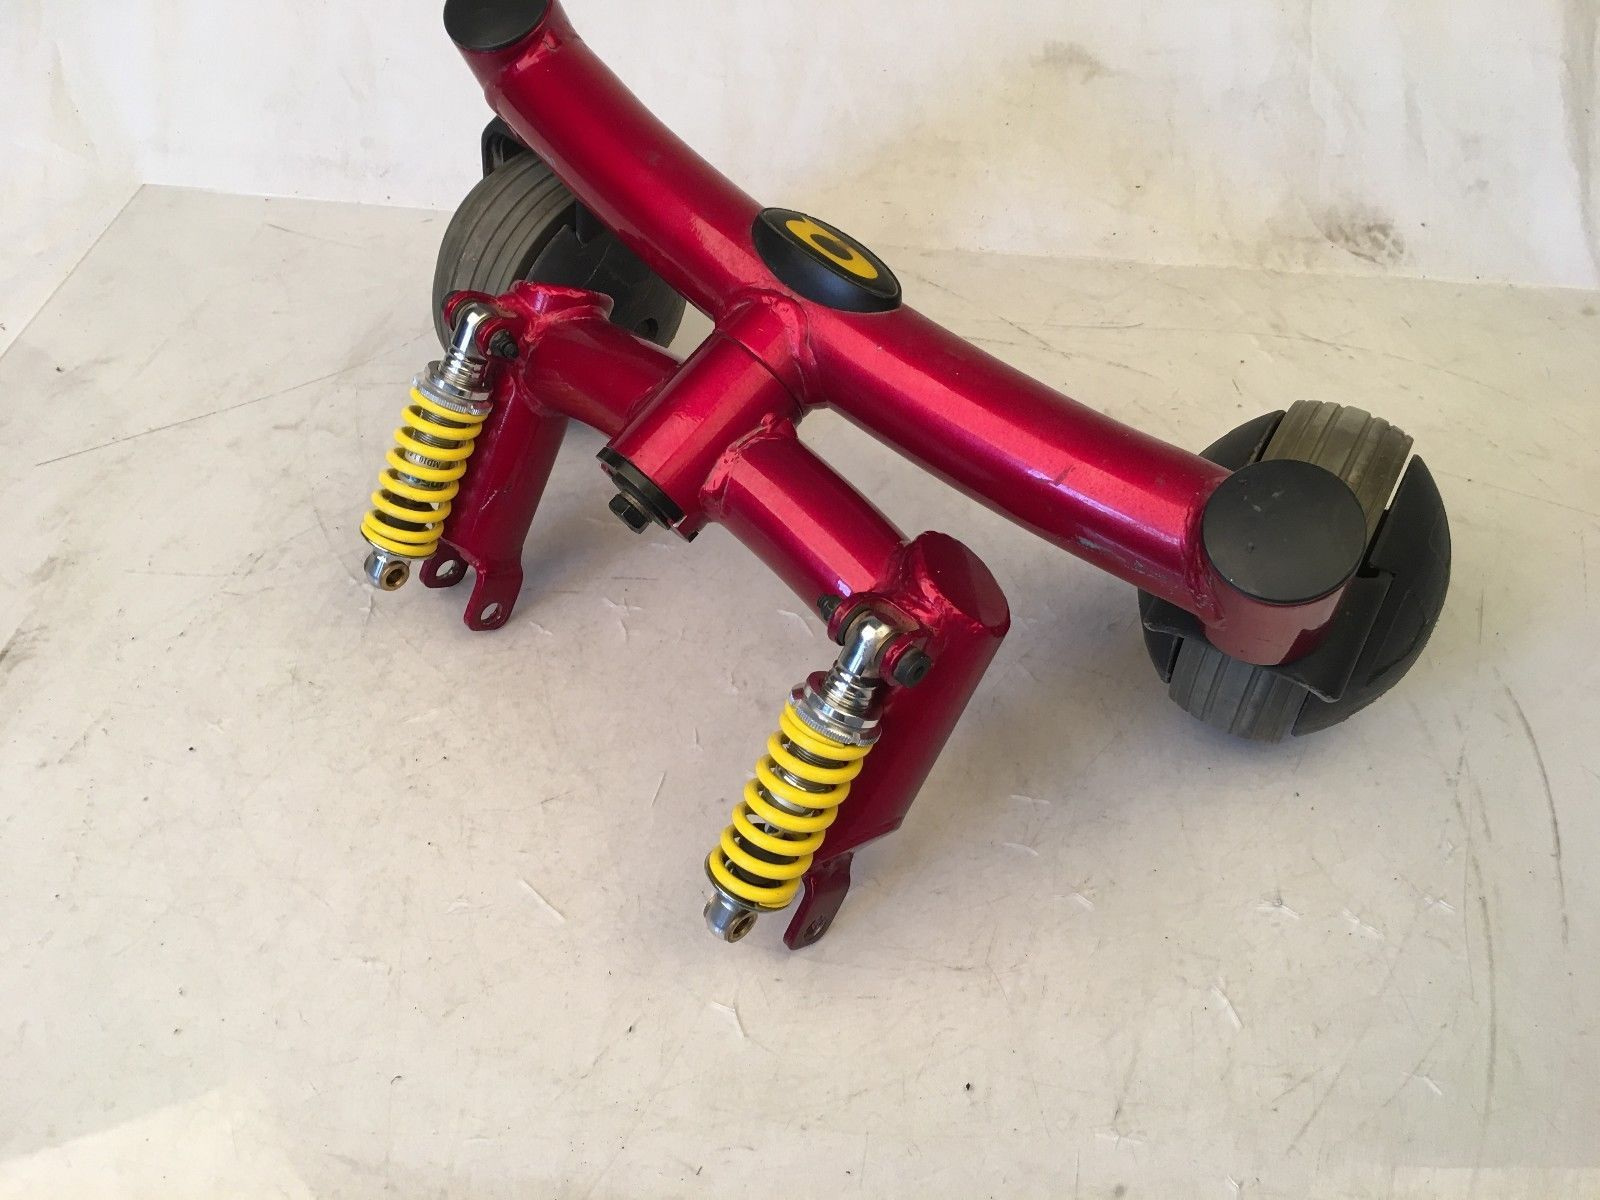 Articulating Beam w/ Casters Wheels Shocks from Pride Quantum 6000z Wheelchair